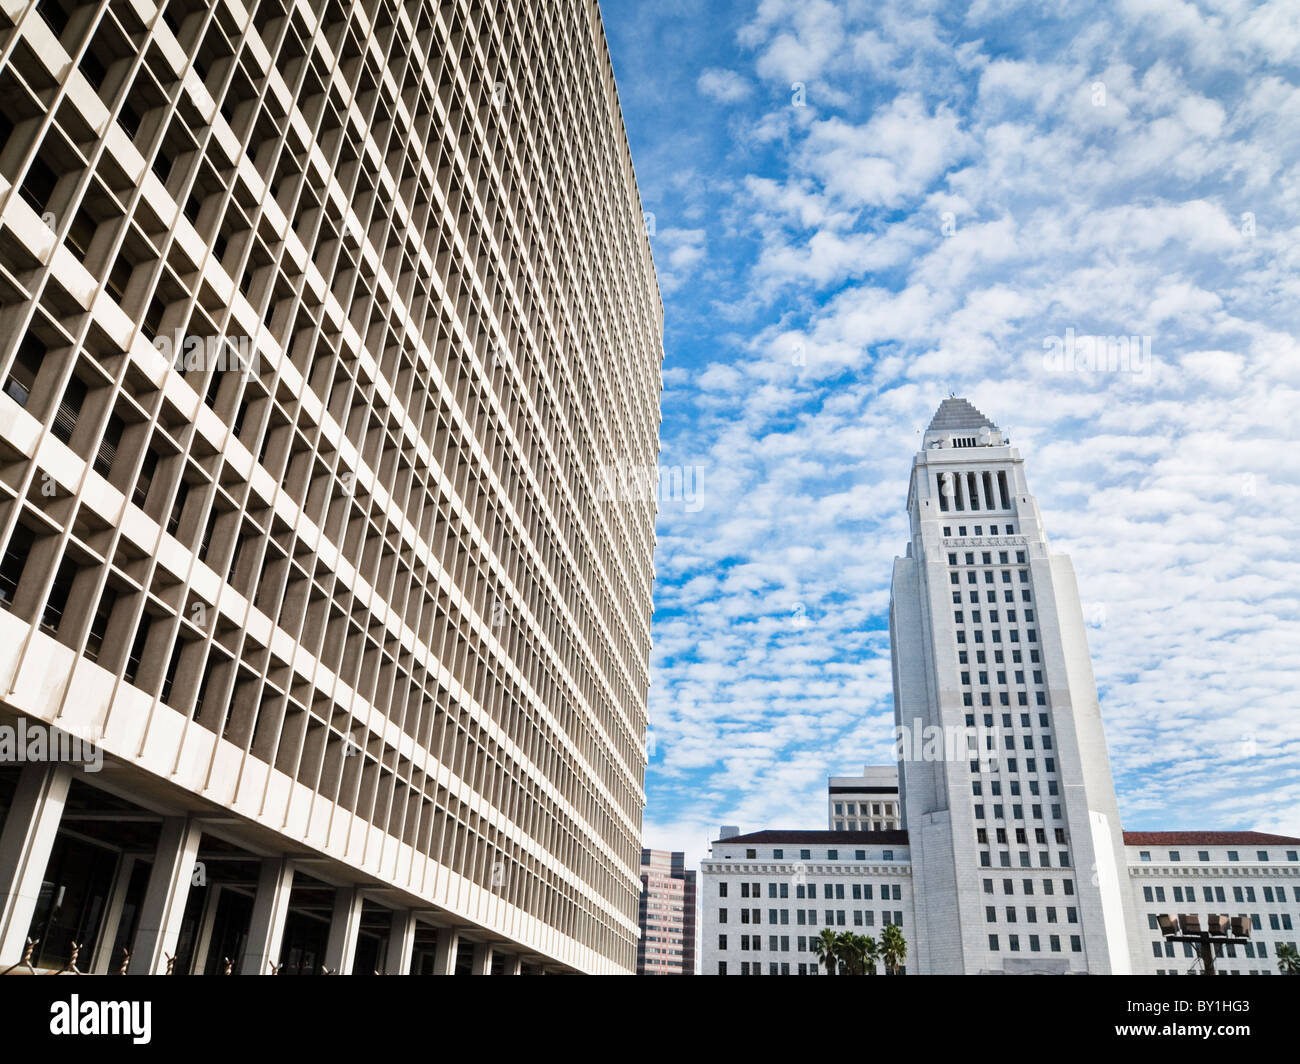 Los Angeles City hall and the criminal court house - Stock Image